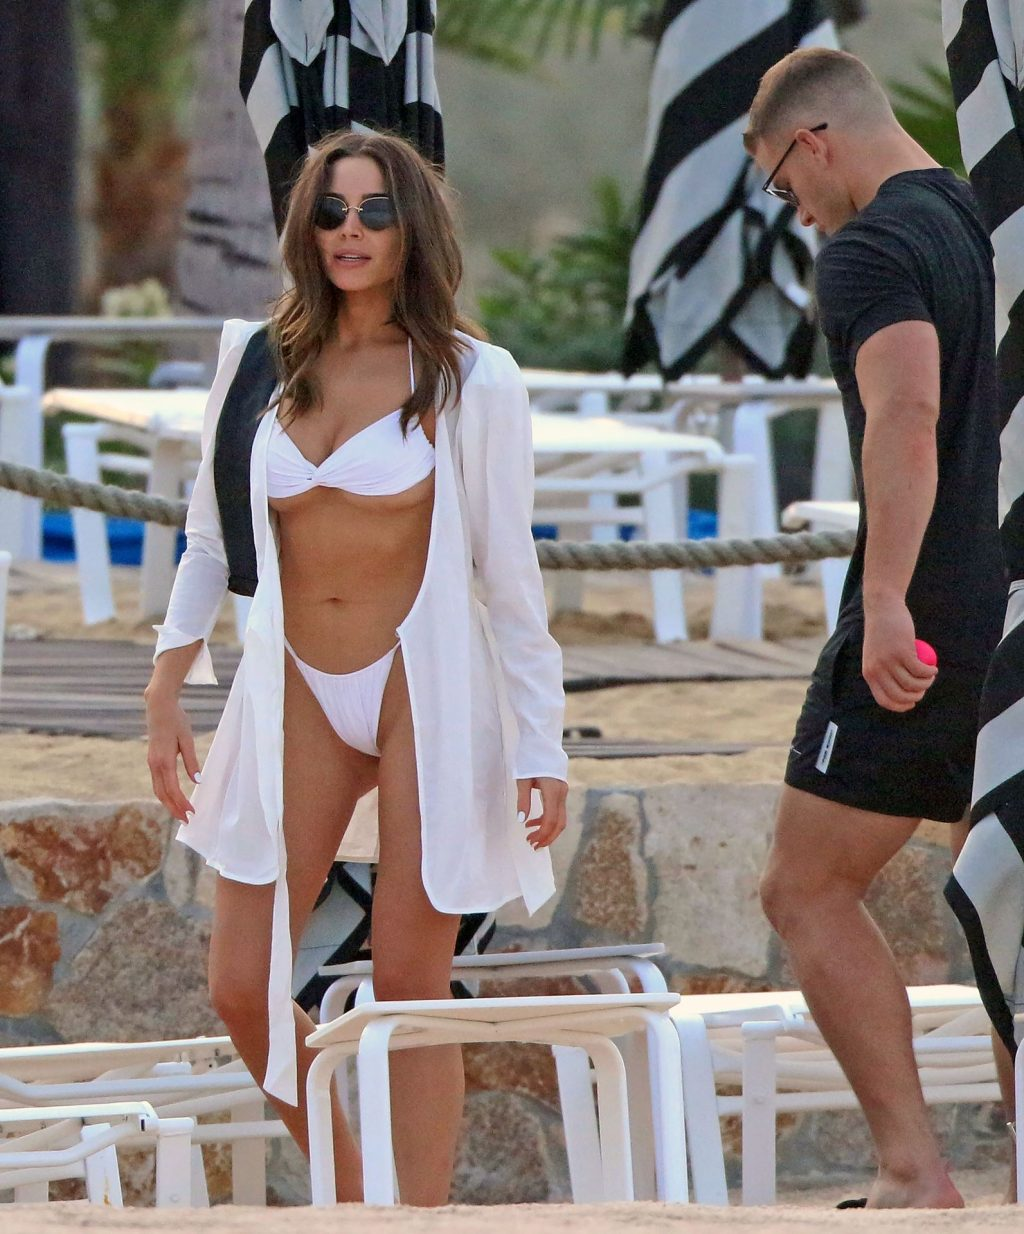 Olivia Culpo Displays Her Amazing Sexy Body in a White Bikini (28 Photos)